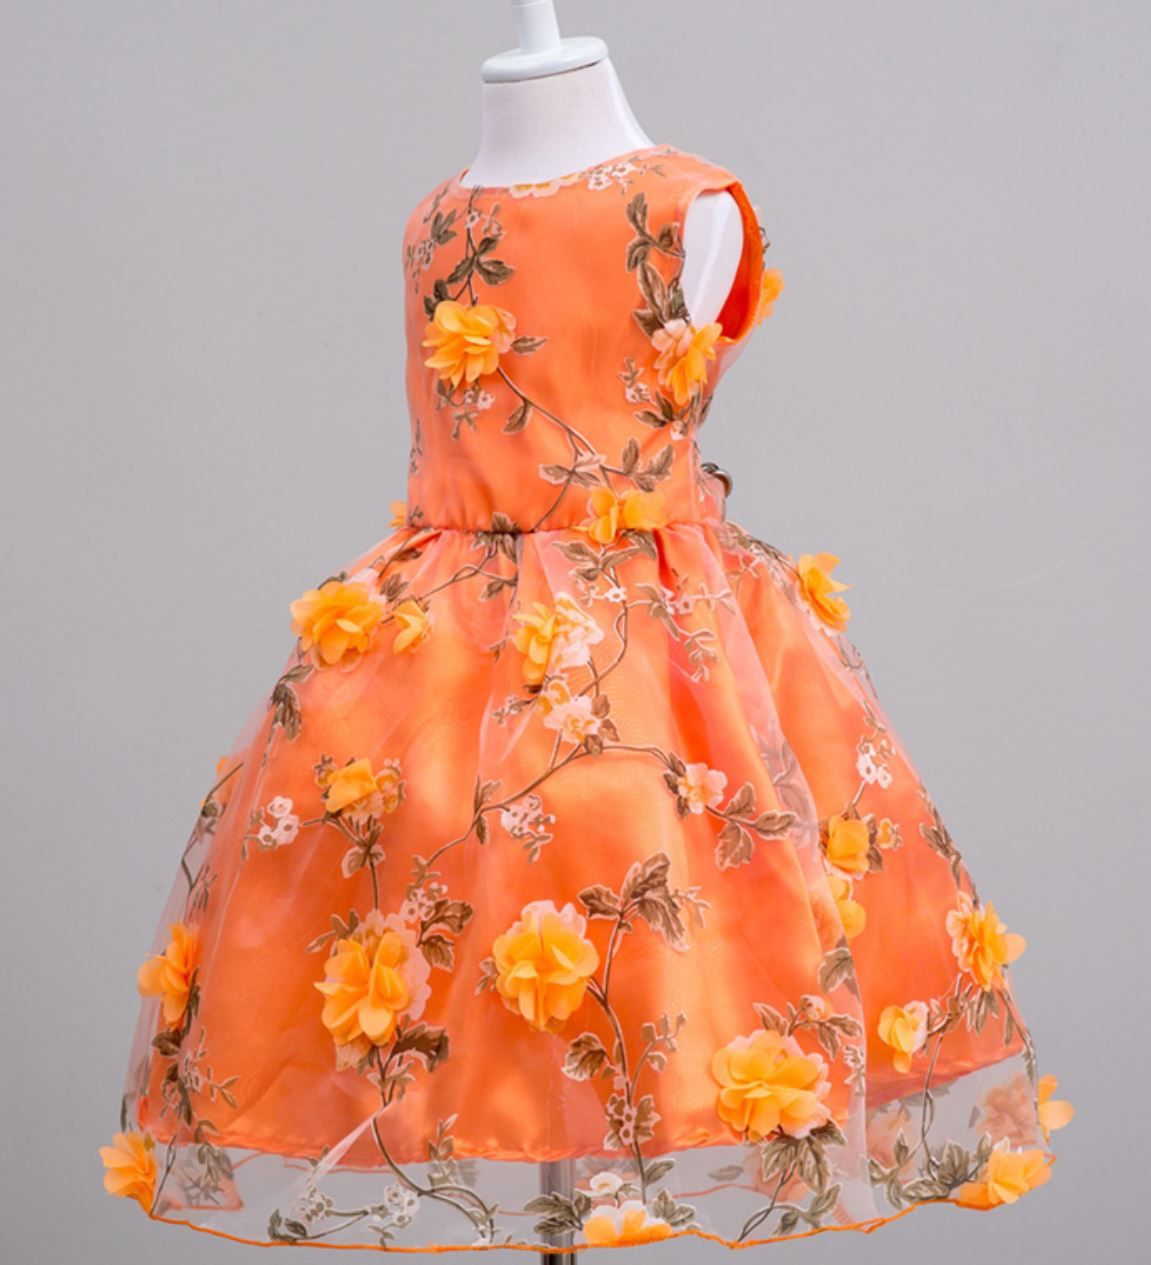 Orange Dress Pageant Dresses Embroidery Dress Free Shipping Orange Formal Dresses for Girls